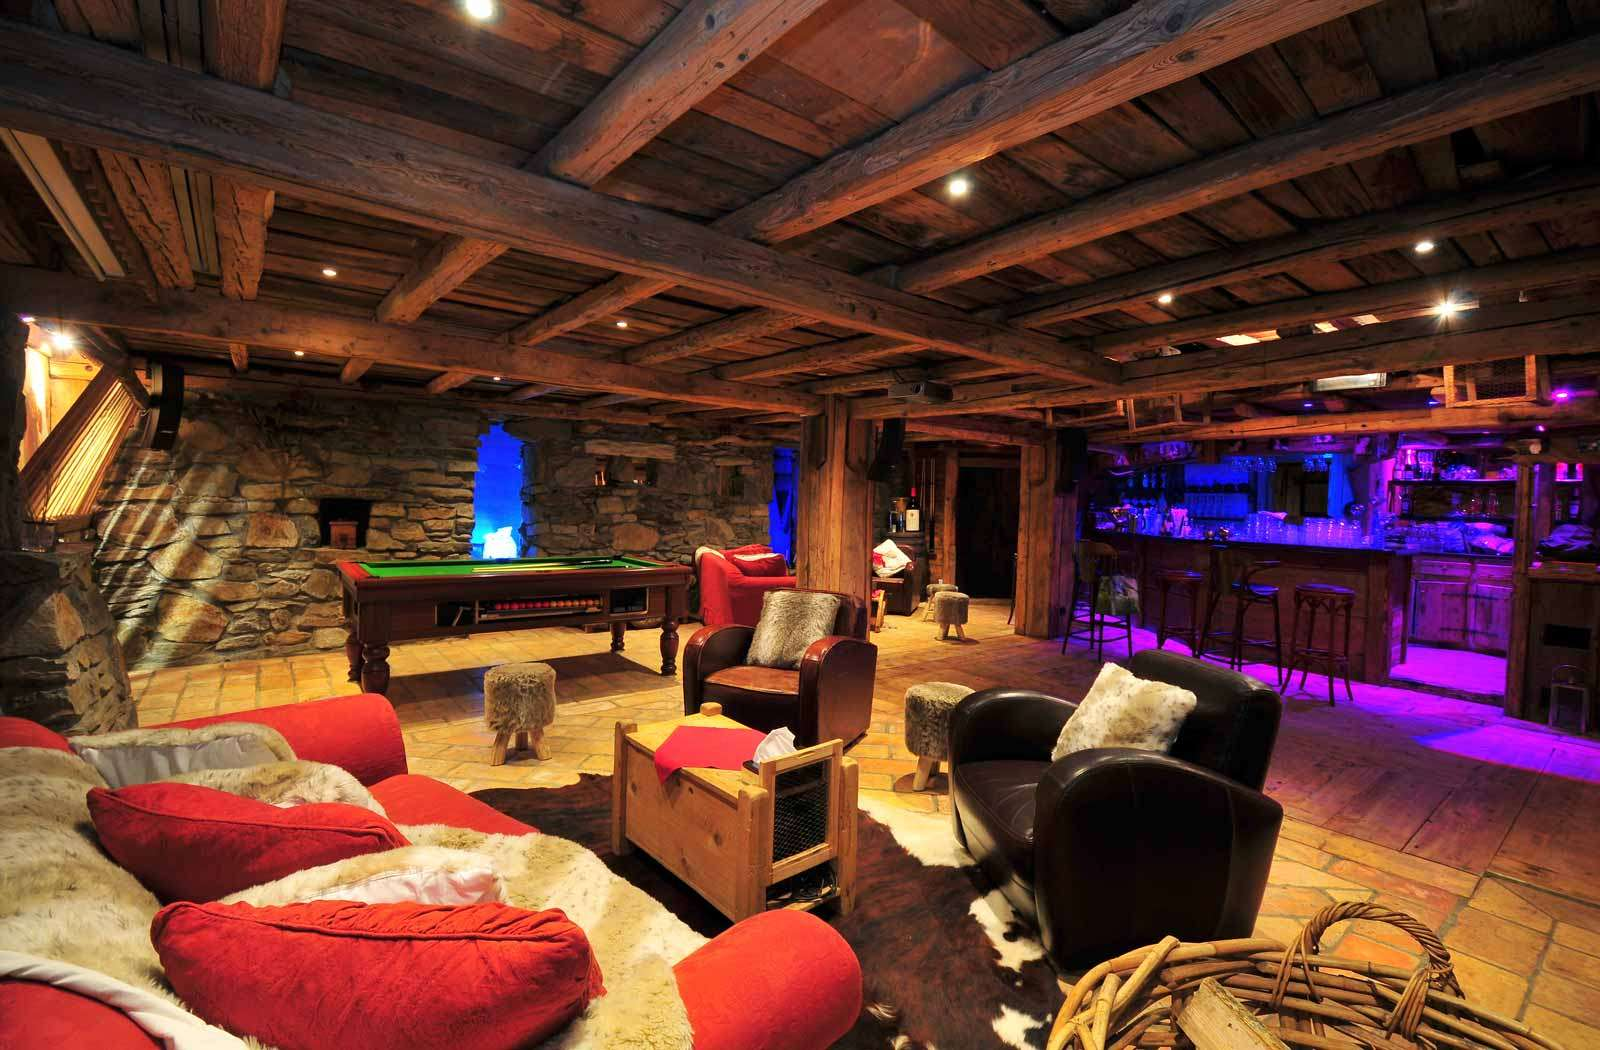 Luxury home game rooms - The 10 Most Expensive Luxury Chalets In The World For This Winter